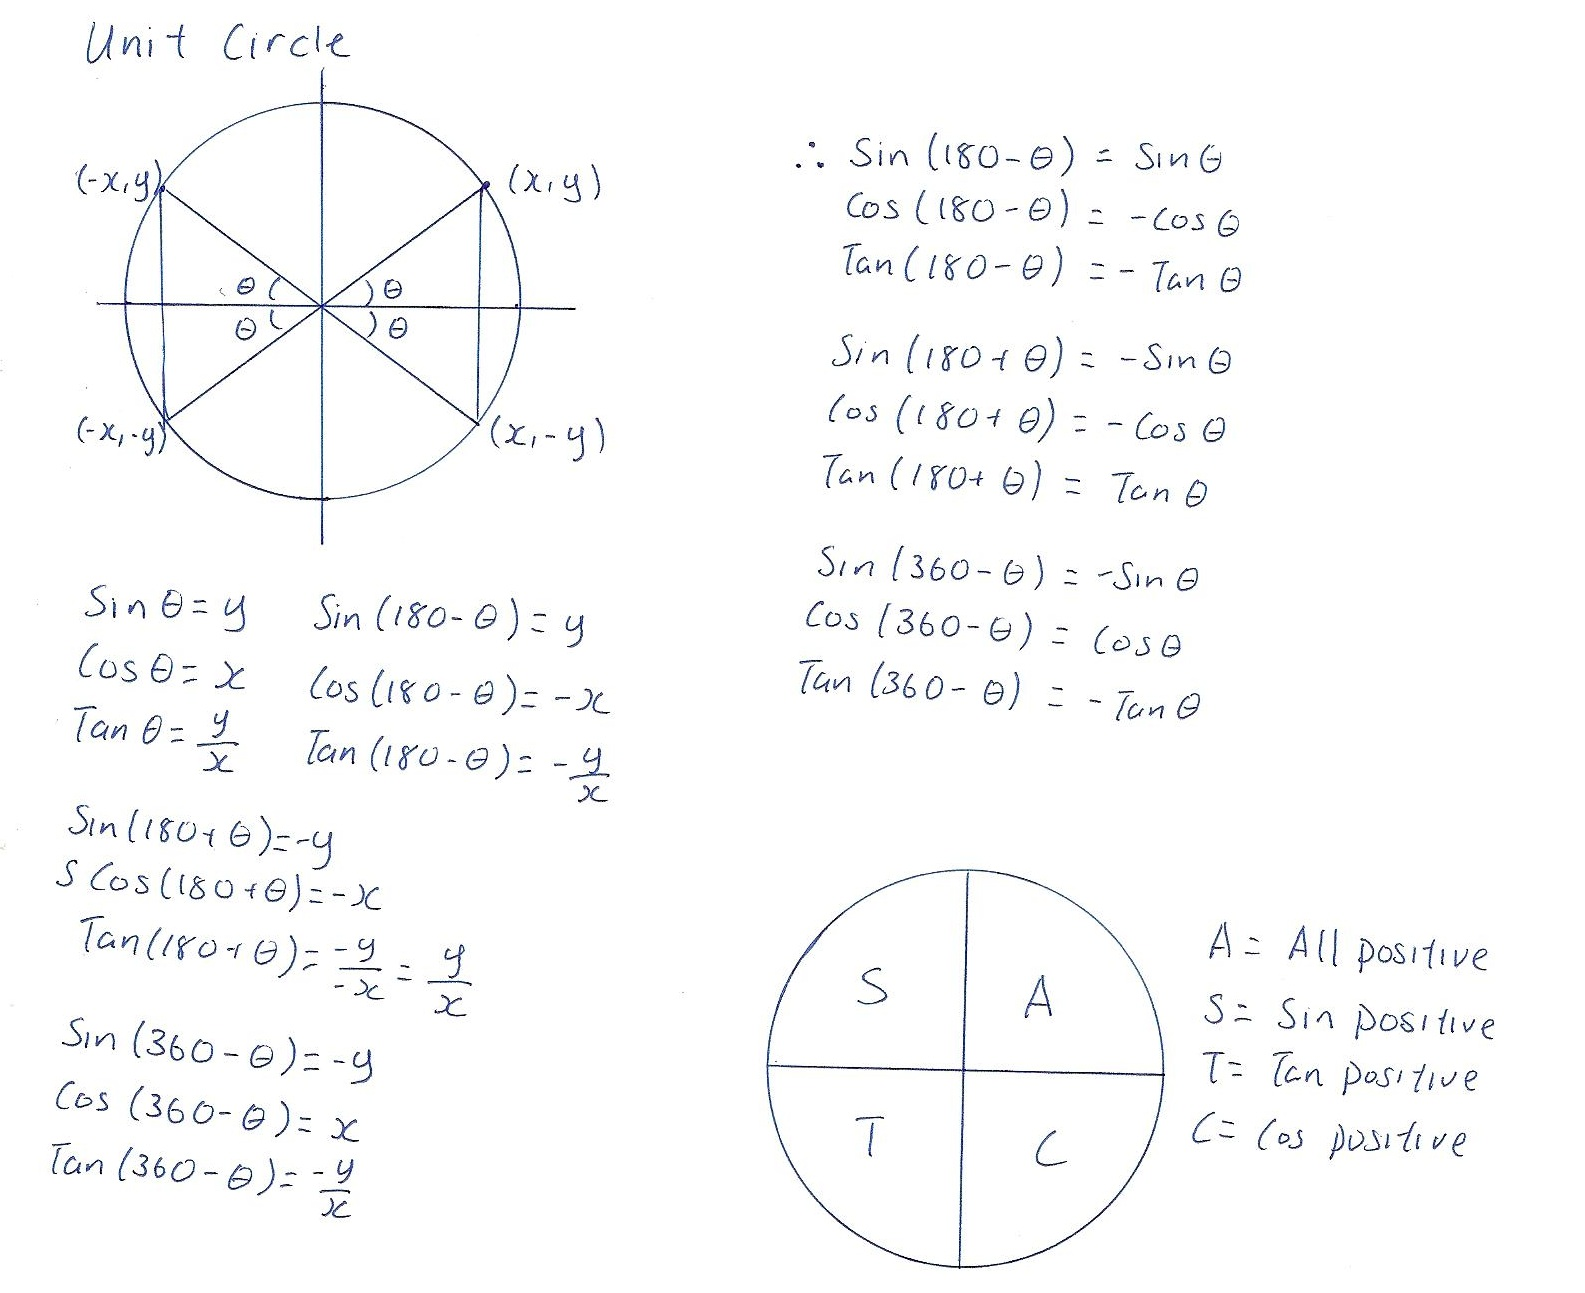 Unit Circle Trigonometry Worksheets Pictures